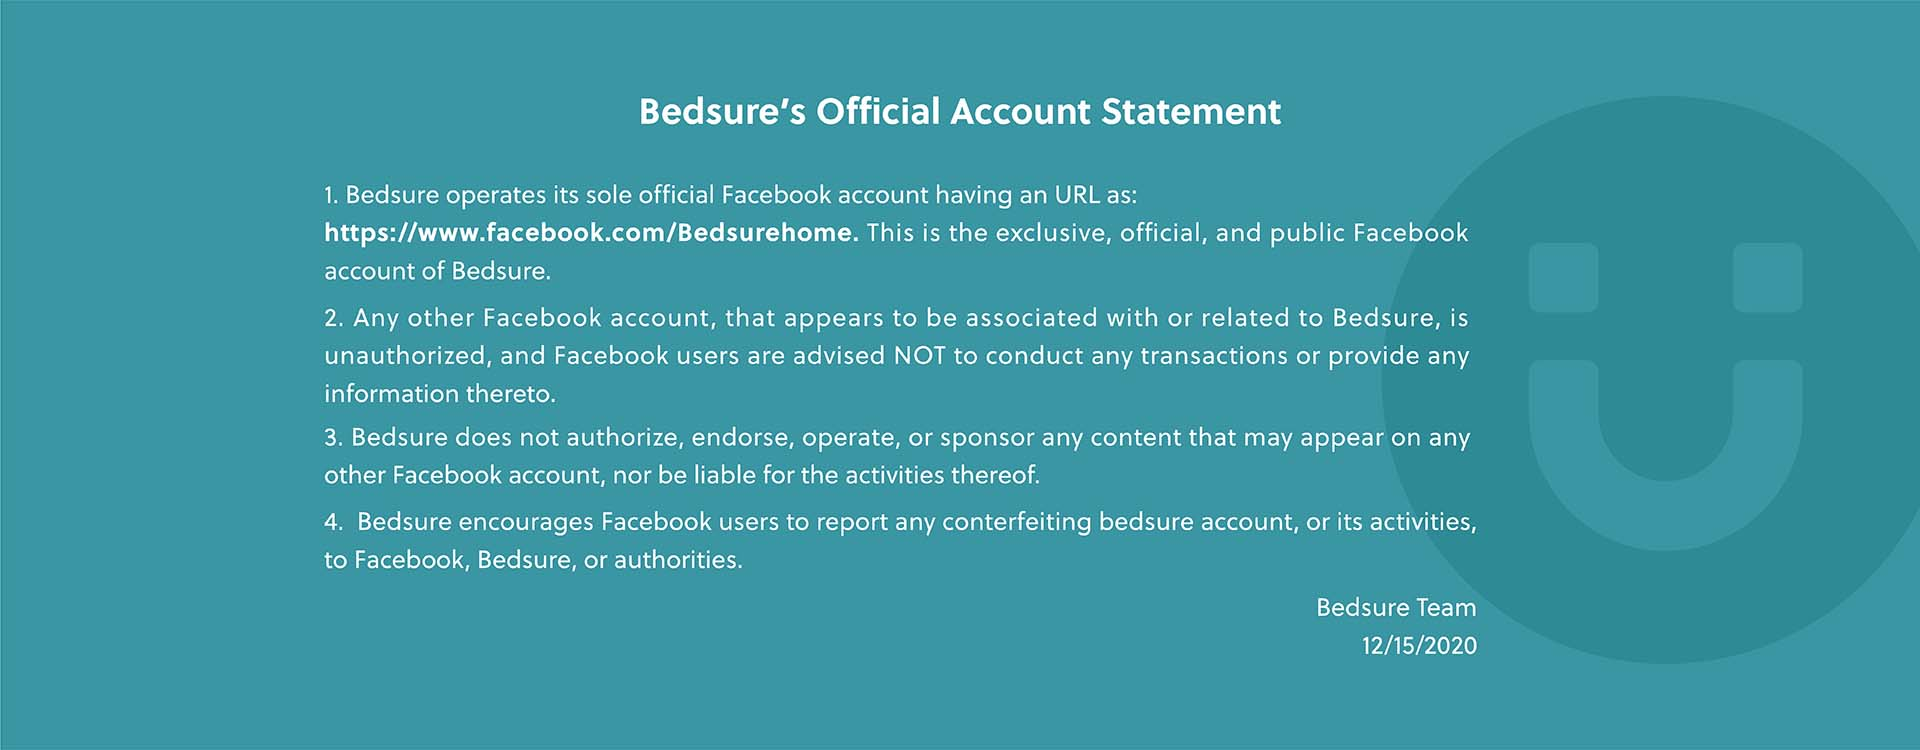 Bedsure's Official Account Statement  1. Bedsure operates its sole official Facebook account having an URL as: https://www.facebook.com/Bedsurehome. This is the exclusive, official, and public Facebook account of Bedsure. 2.Any other Facebook account, that appears to be associated with or related to Bedsure, is unauthorized, and Facebook users are advised NOT to conduct any transactions or provide any information thereto. 3.Bedsure does not authorize, endorse, operate, or sponsor any content that may appear on any other Facebook account, nor be liable for the activities thereof.  4.Bedsure encourages Facebook users to report any conterfeiting bedsure account, or its activities, to Facebook, Bedsure, or authorities.   Bedsure Team 12/15/2020